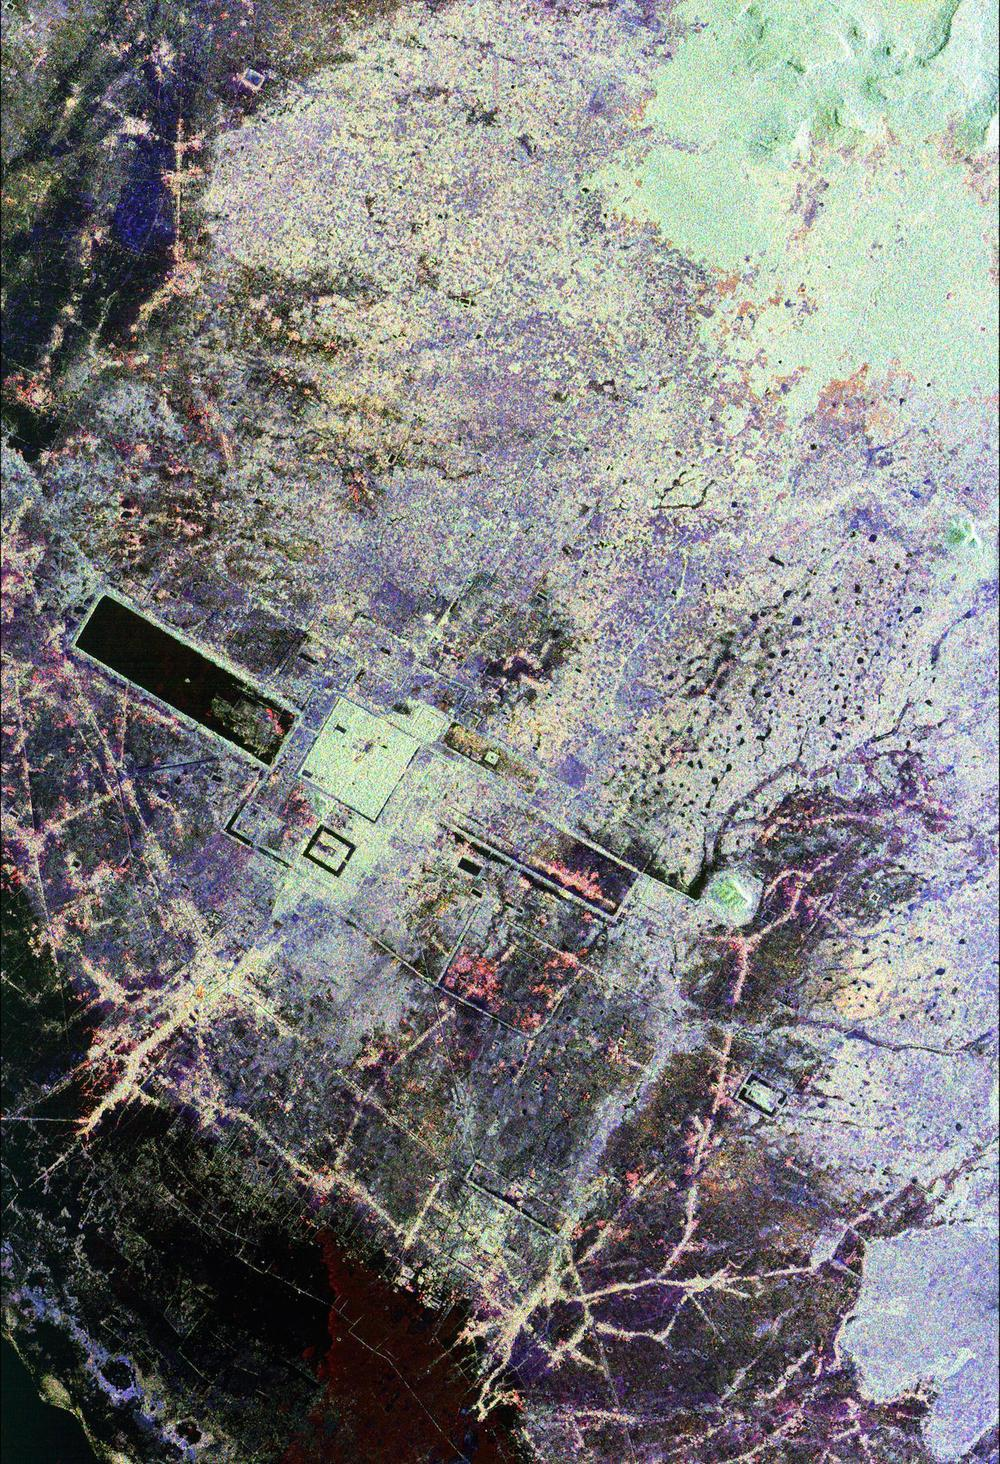 This space radar image of Cambodia's temples in Angkor helped uncover ancient canals and previously unknown structures hidden beneath the forest canopy.   Credit: Nasa/JPL-Caltech